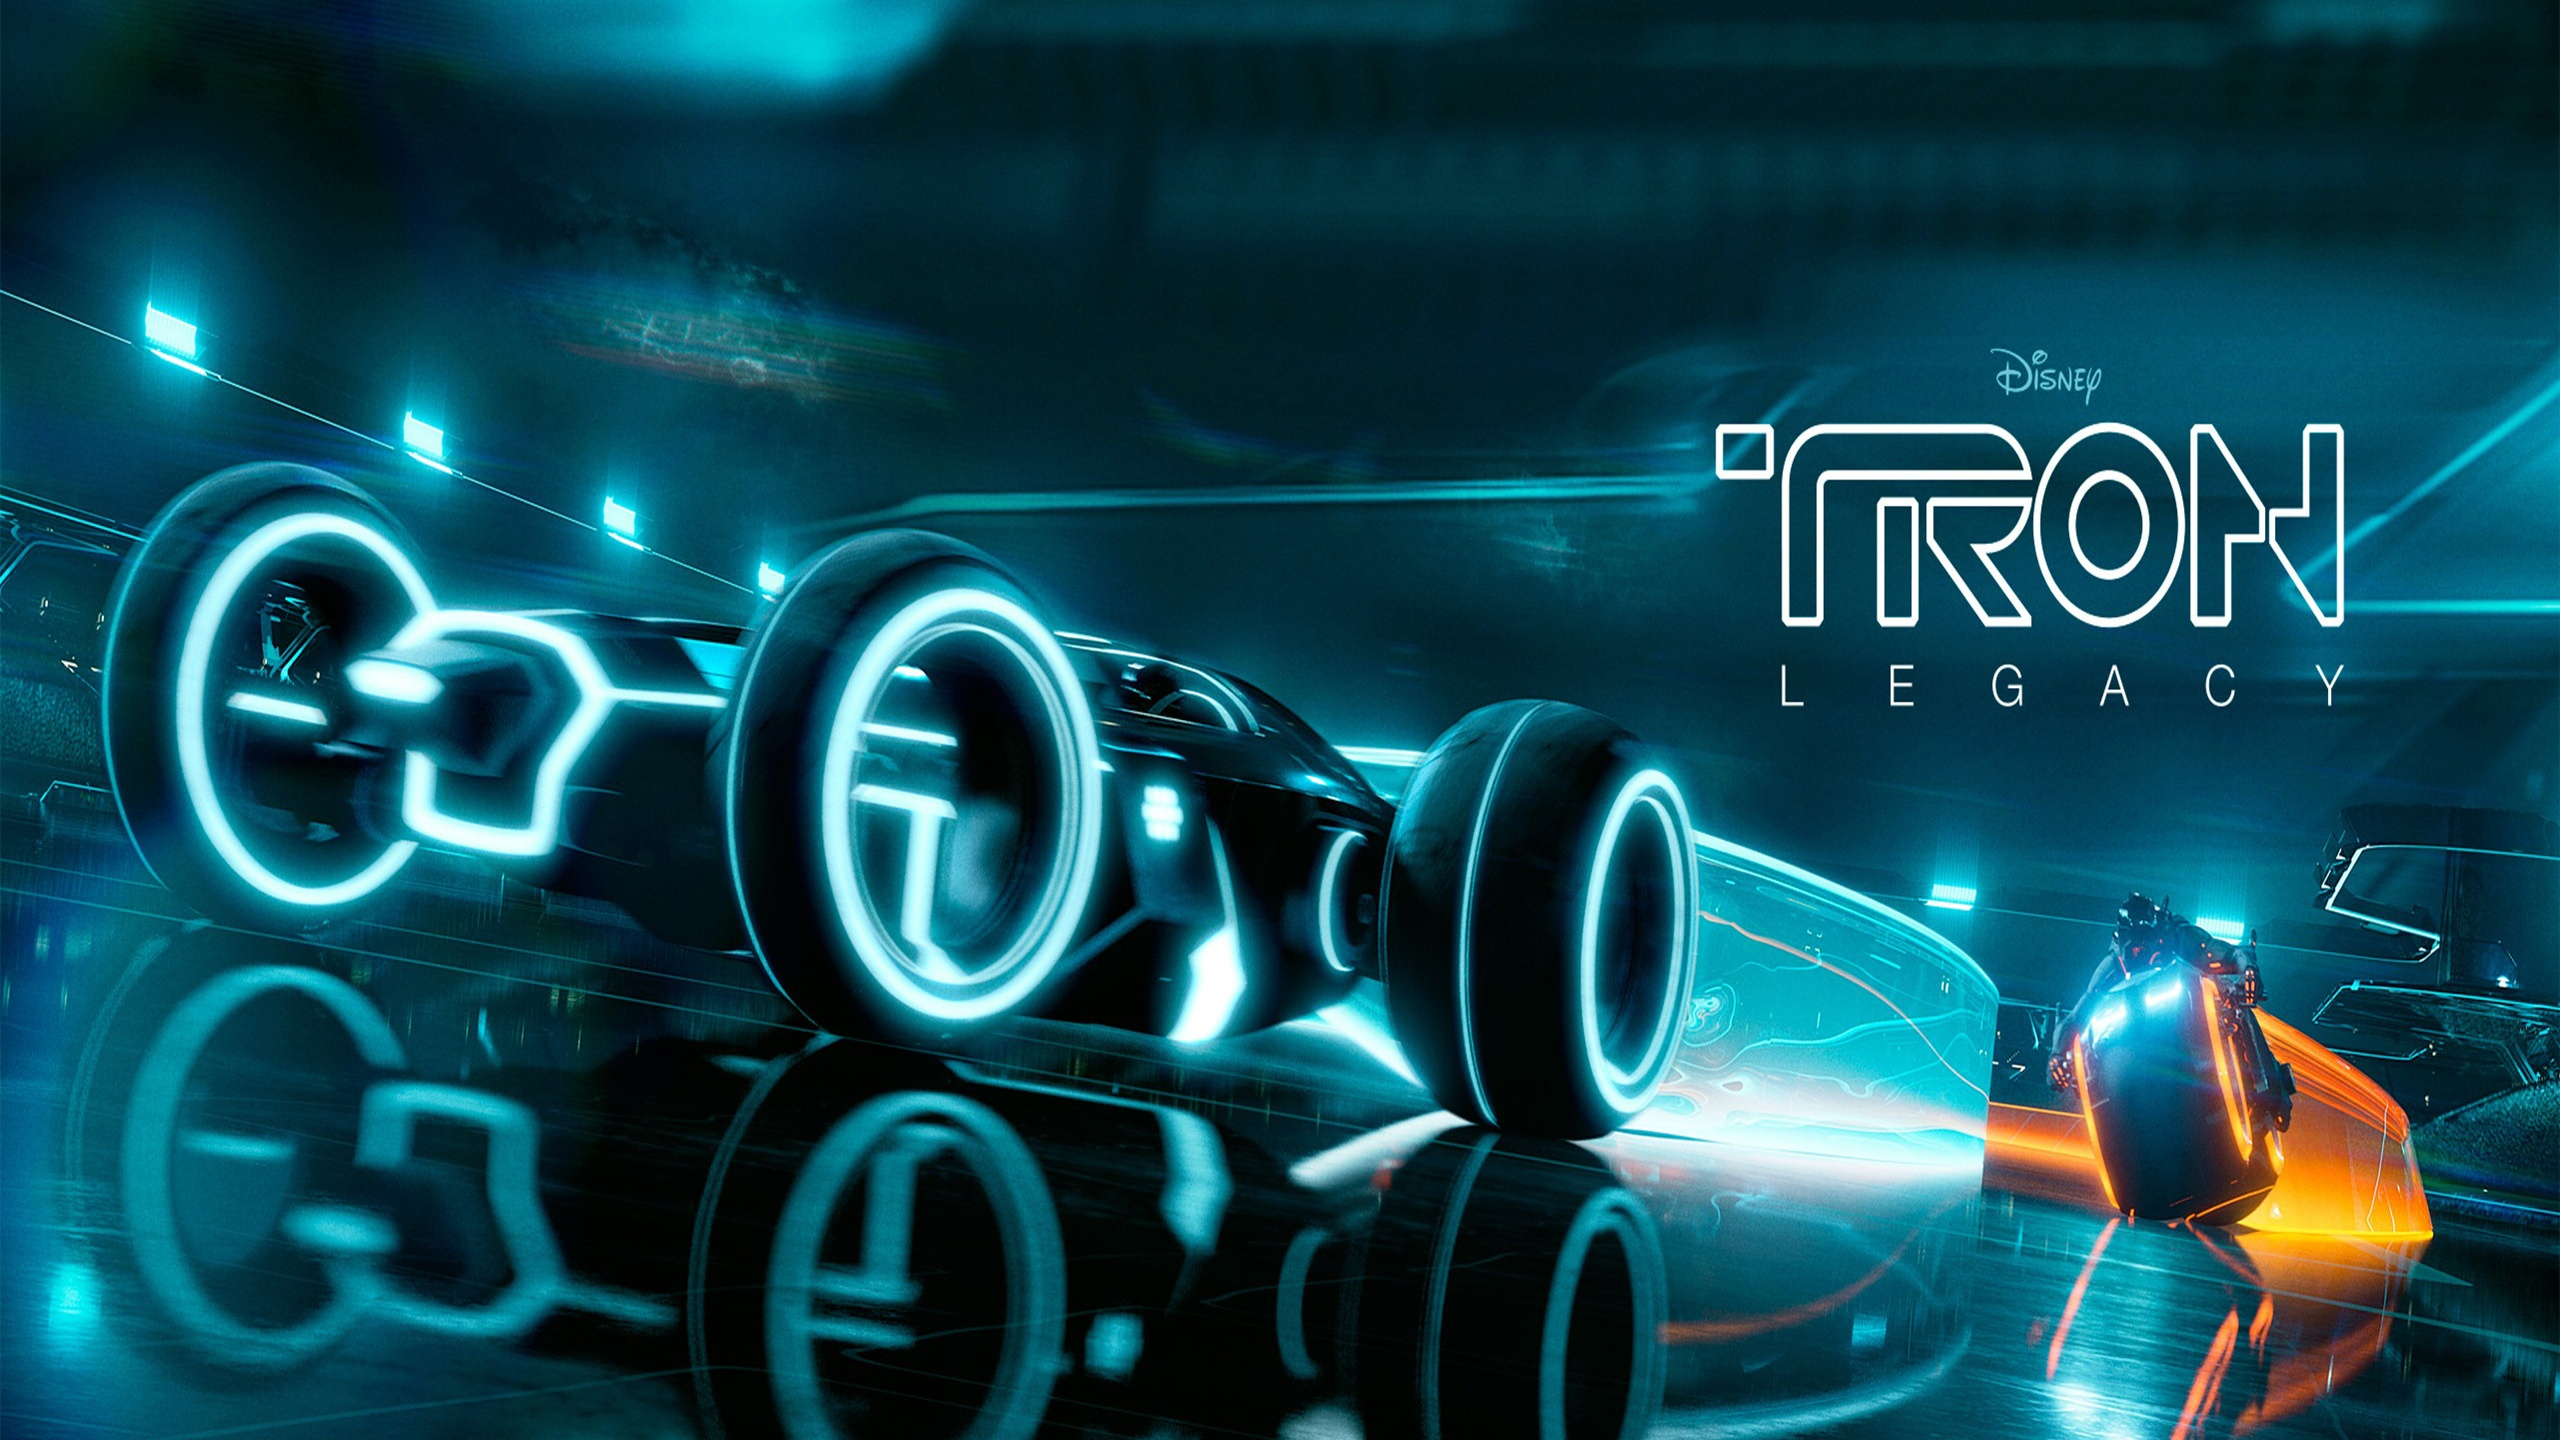 Tron Legacy Light Battle Wallpapers In Jpg Format For Free Download